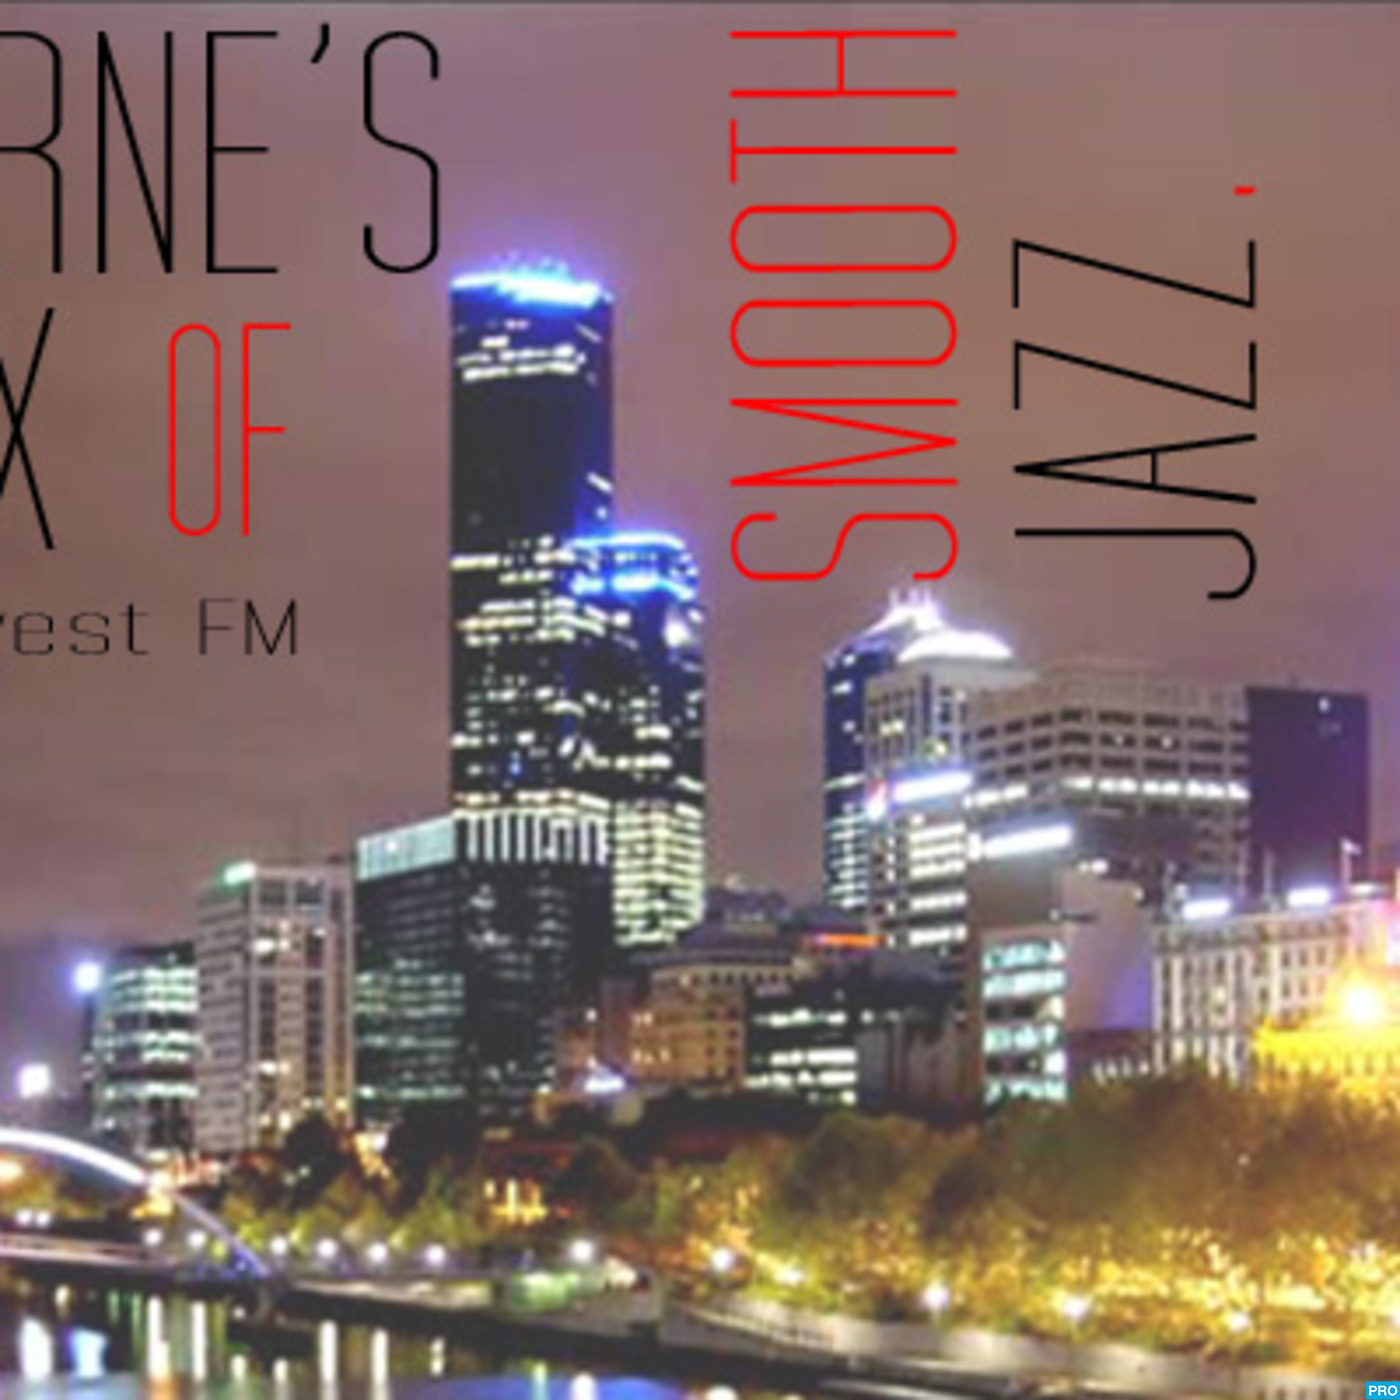 Melbourne's Best Mix of Smooth Jazz Podcast